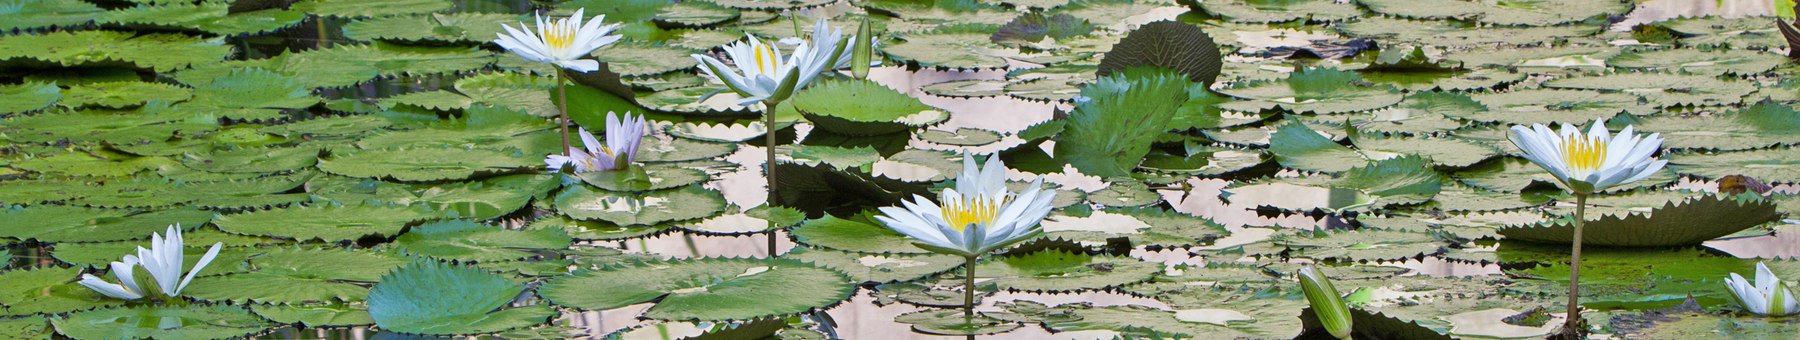 Lotus Flower Pool Header